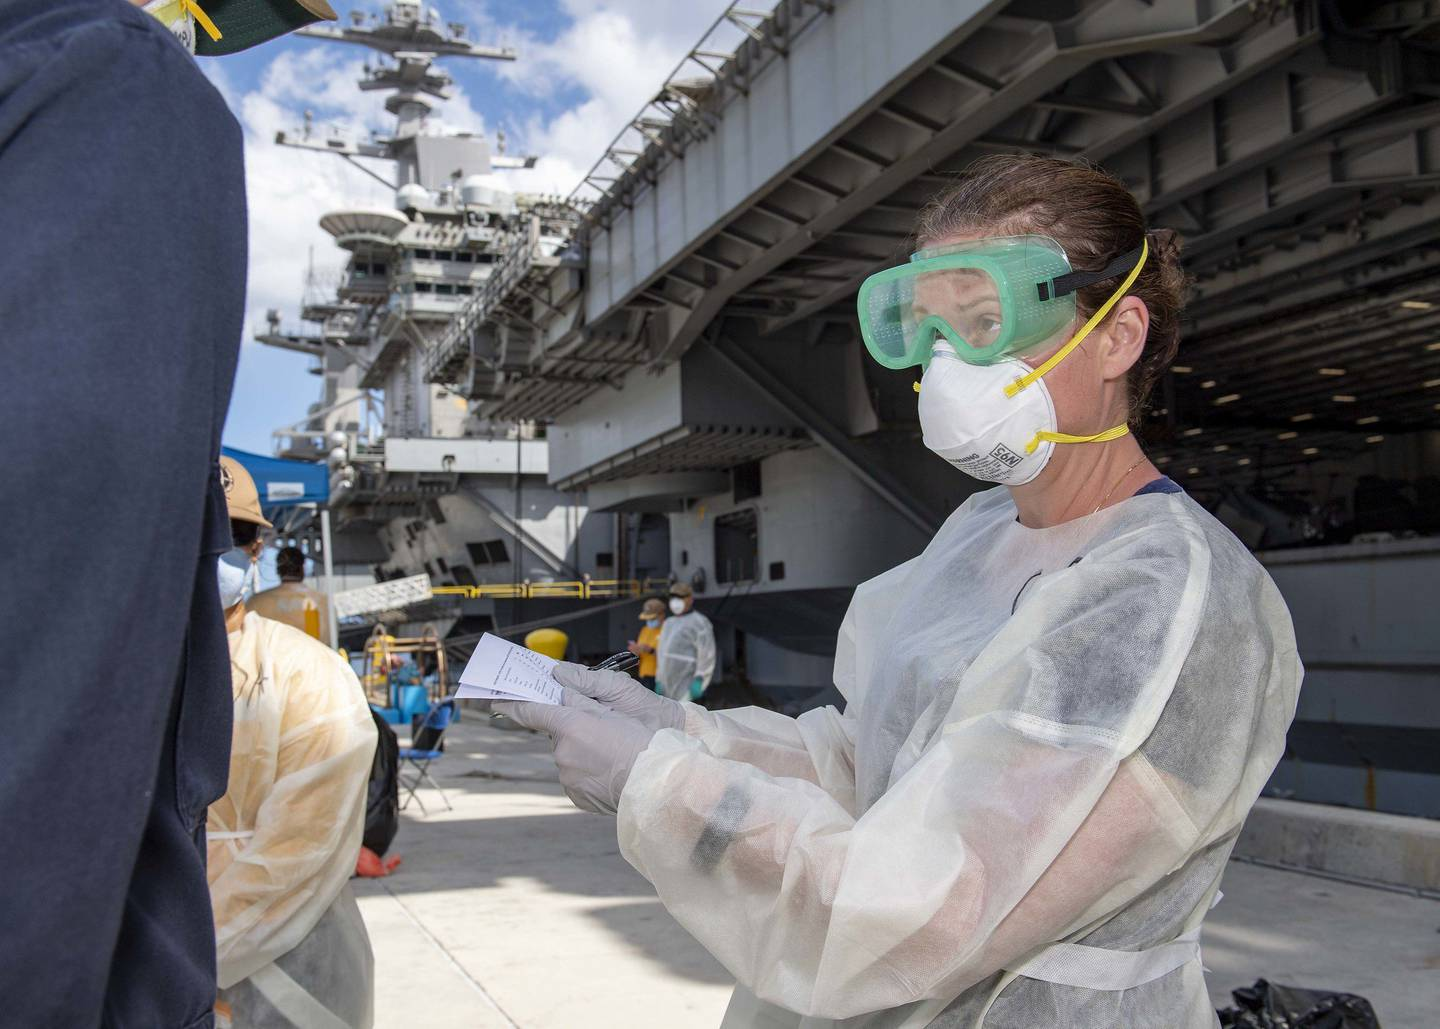 Cmdr. Brianna Rupp, a preventative medicine physician from the Navy and Marine Corps Public Health Center, takes a survey from a U.S. sailor assigned to the aircraft carrier Theodore Roosevelt (CVN 71) on April 22, 2020, in Apra, Guam, as part of a public health outbreak investigation.